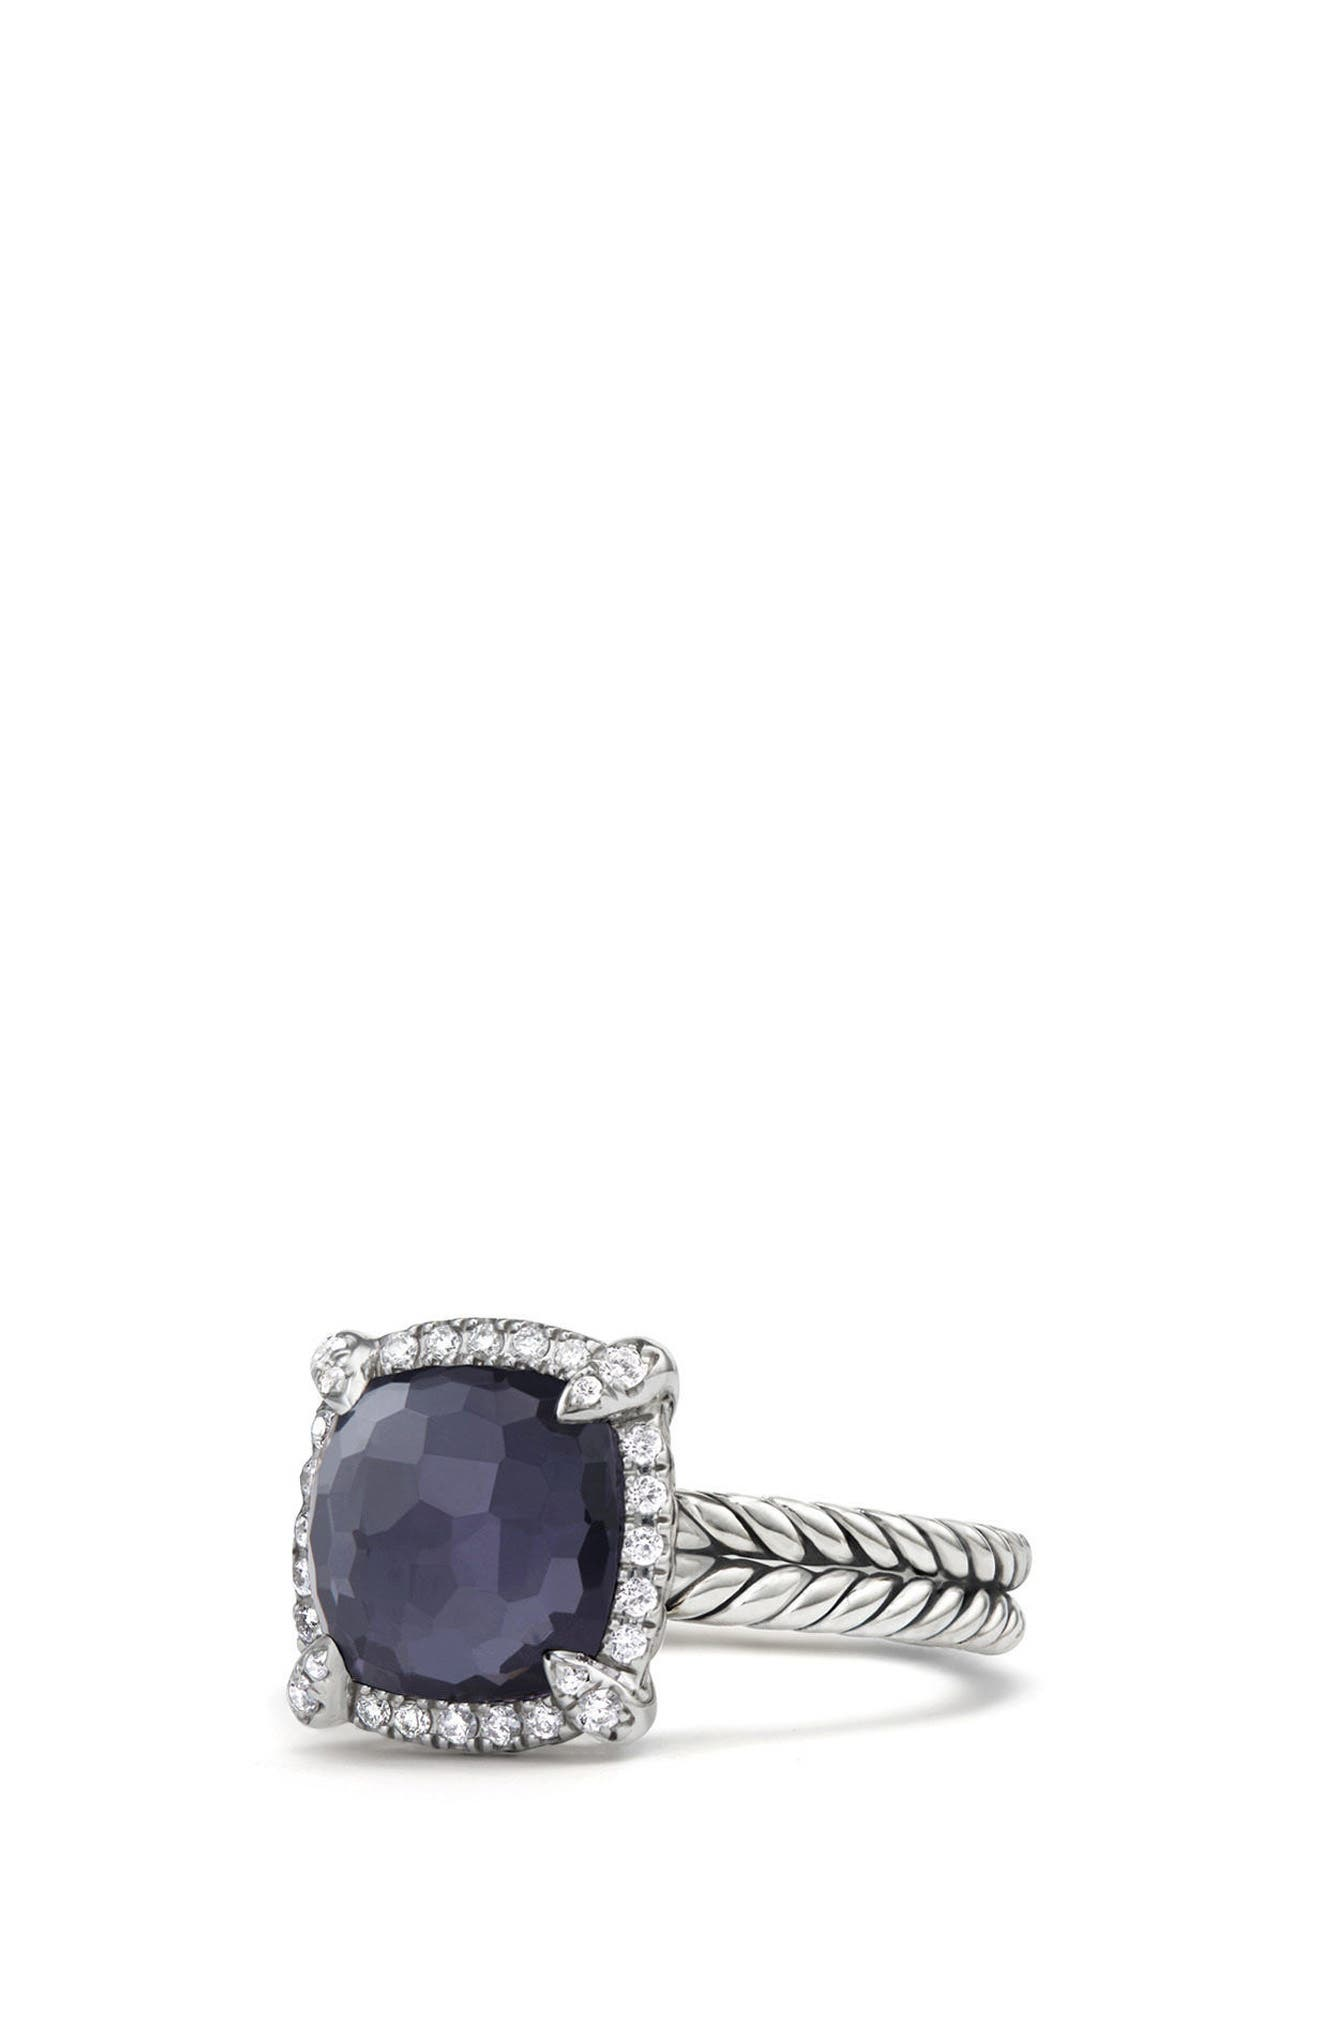 David Yurman Chatelaine Pavé Bezel Ring with Black Orchid & Diamonds, 9mm